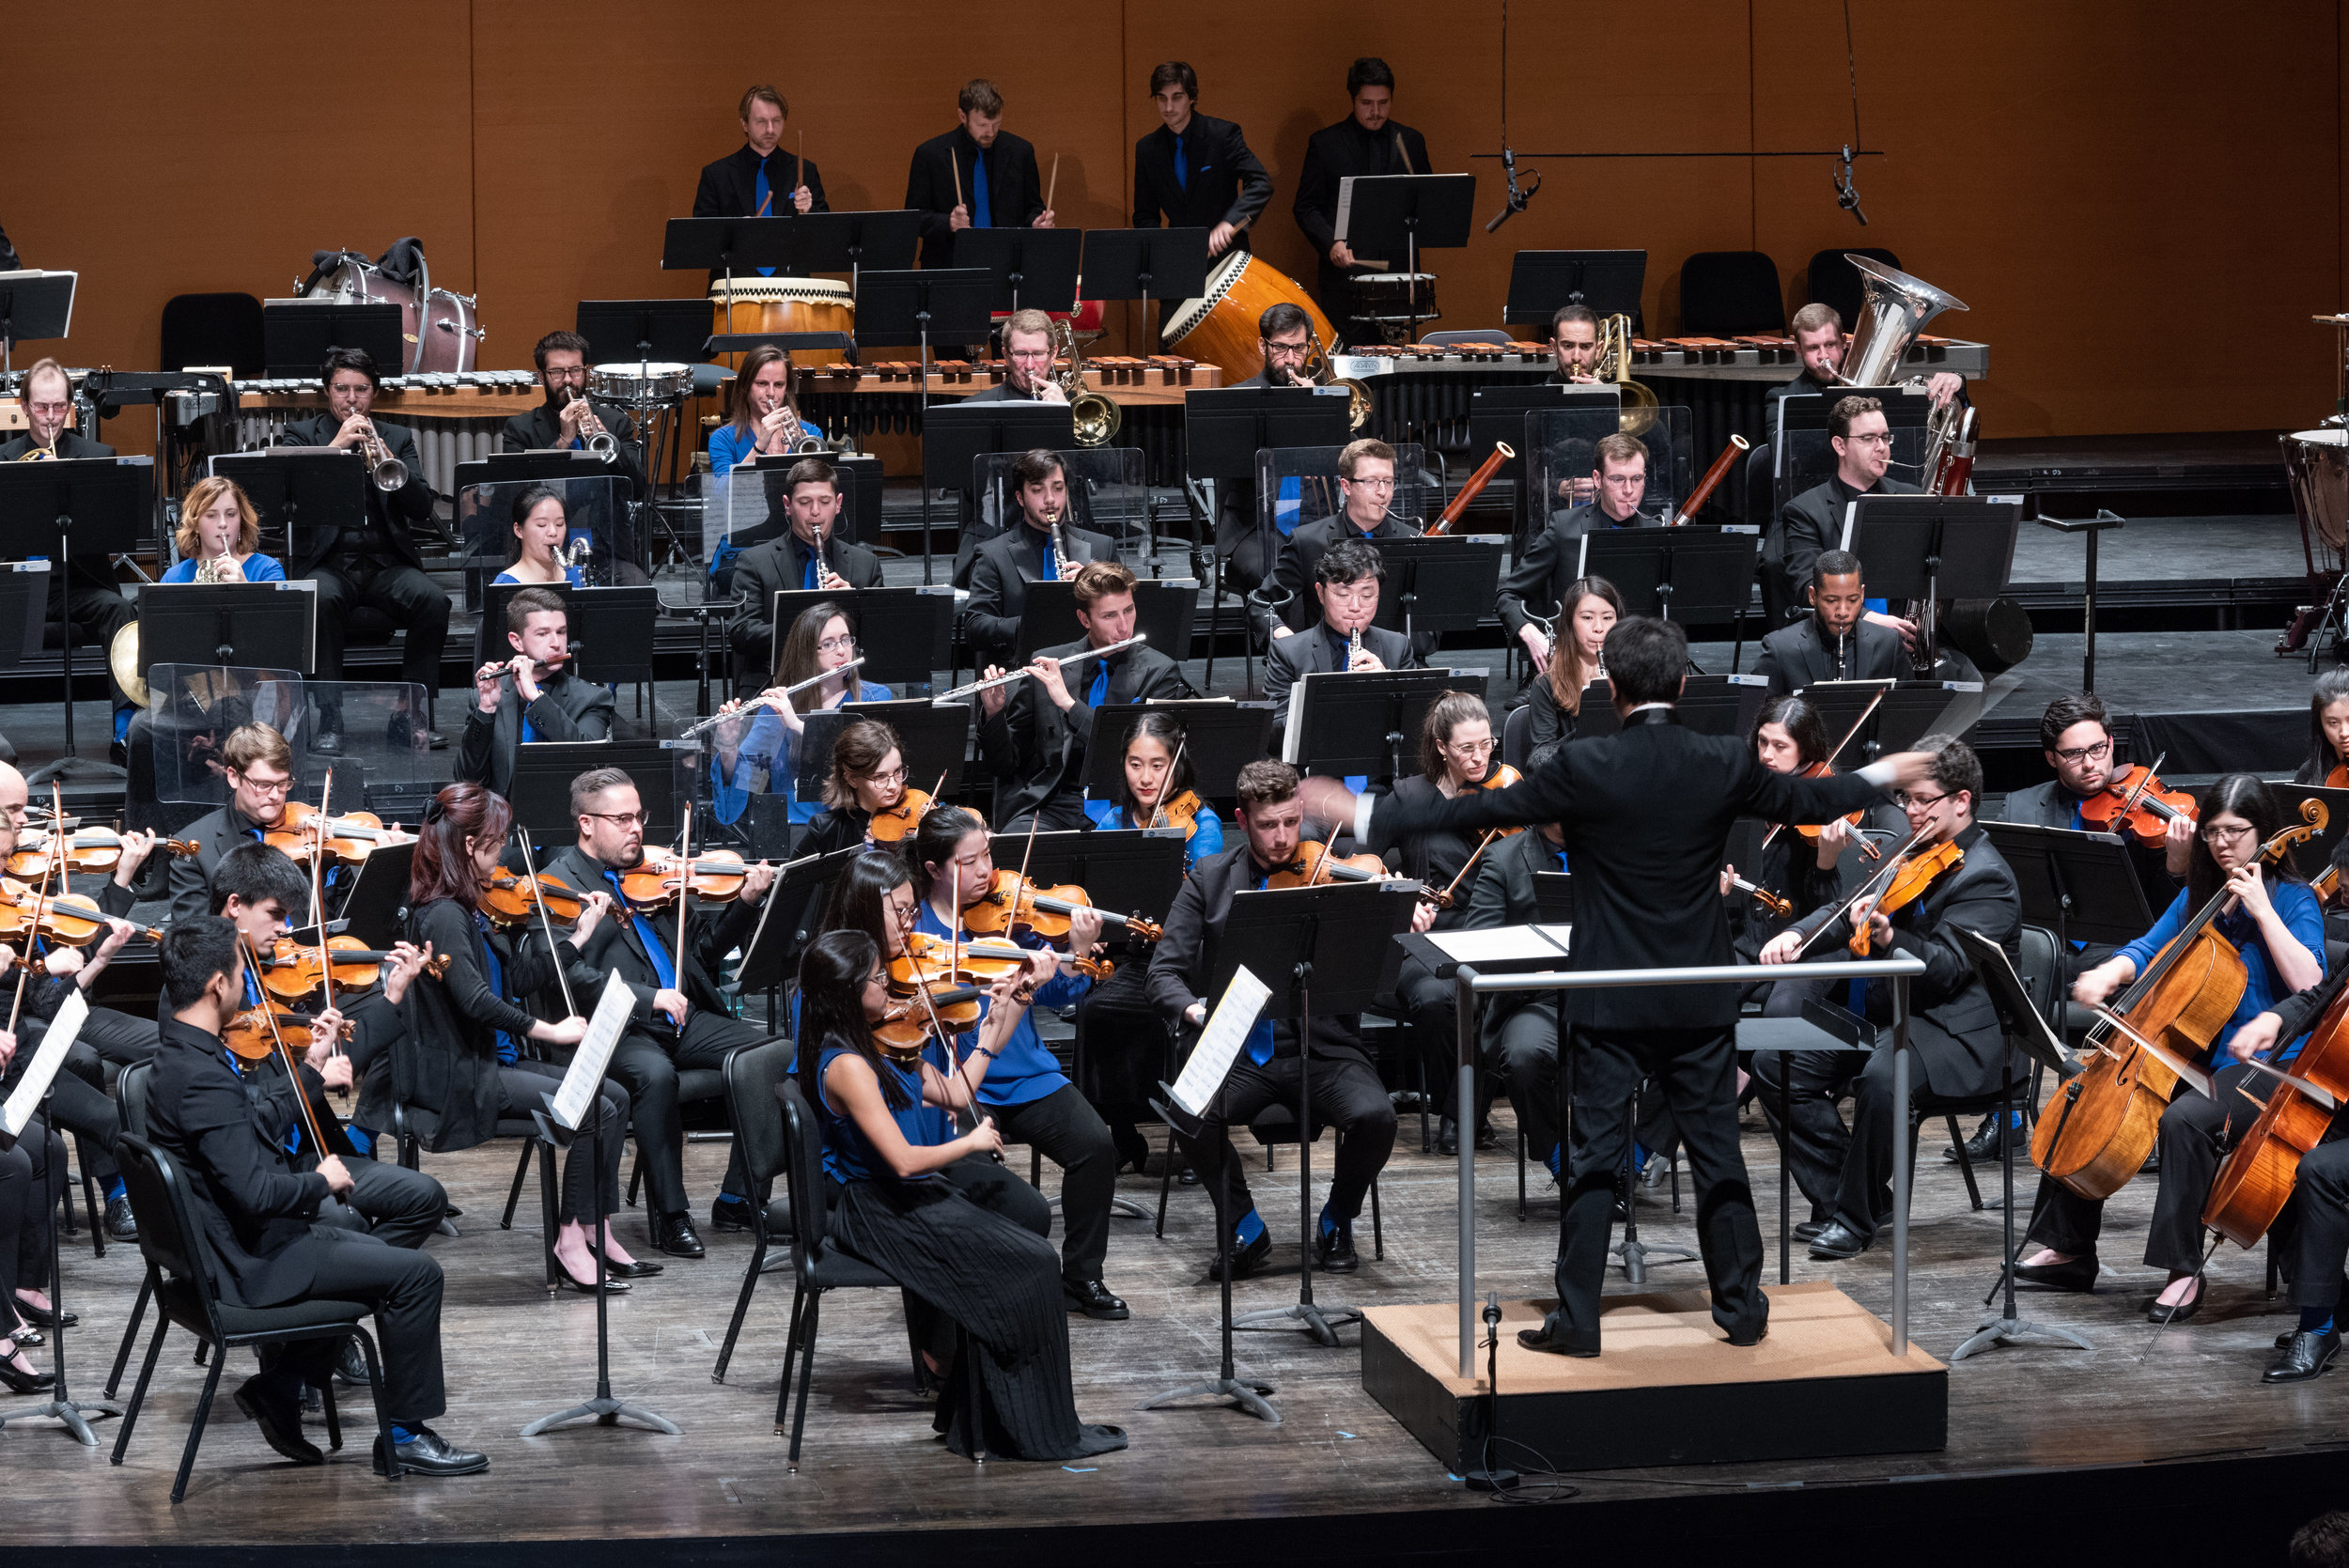 The Orchestra Now with conductor Jindong Cai. Photo by Karl Rabe.